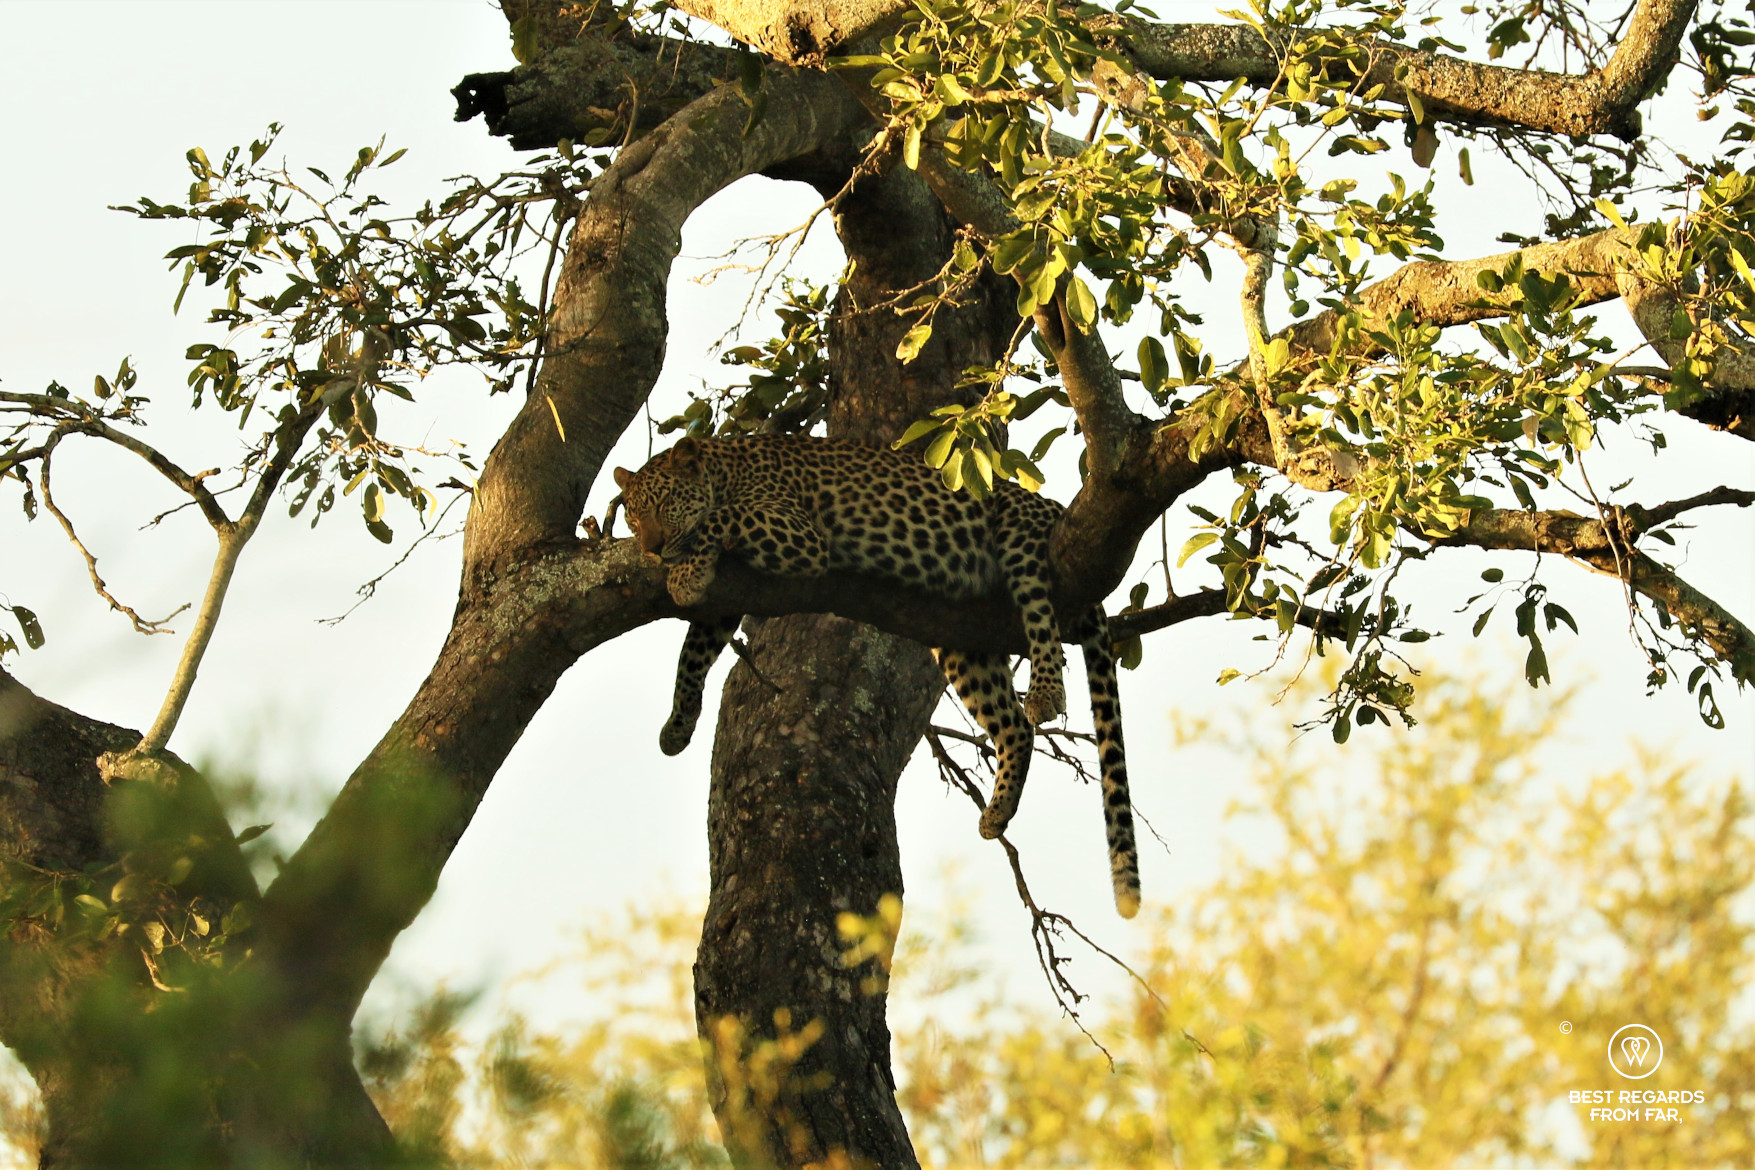 Wild leopard sleeping in a tree at sunset in South Africa